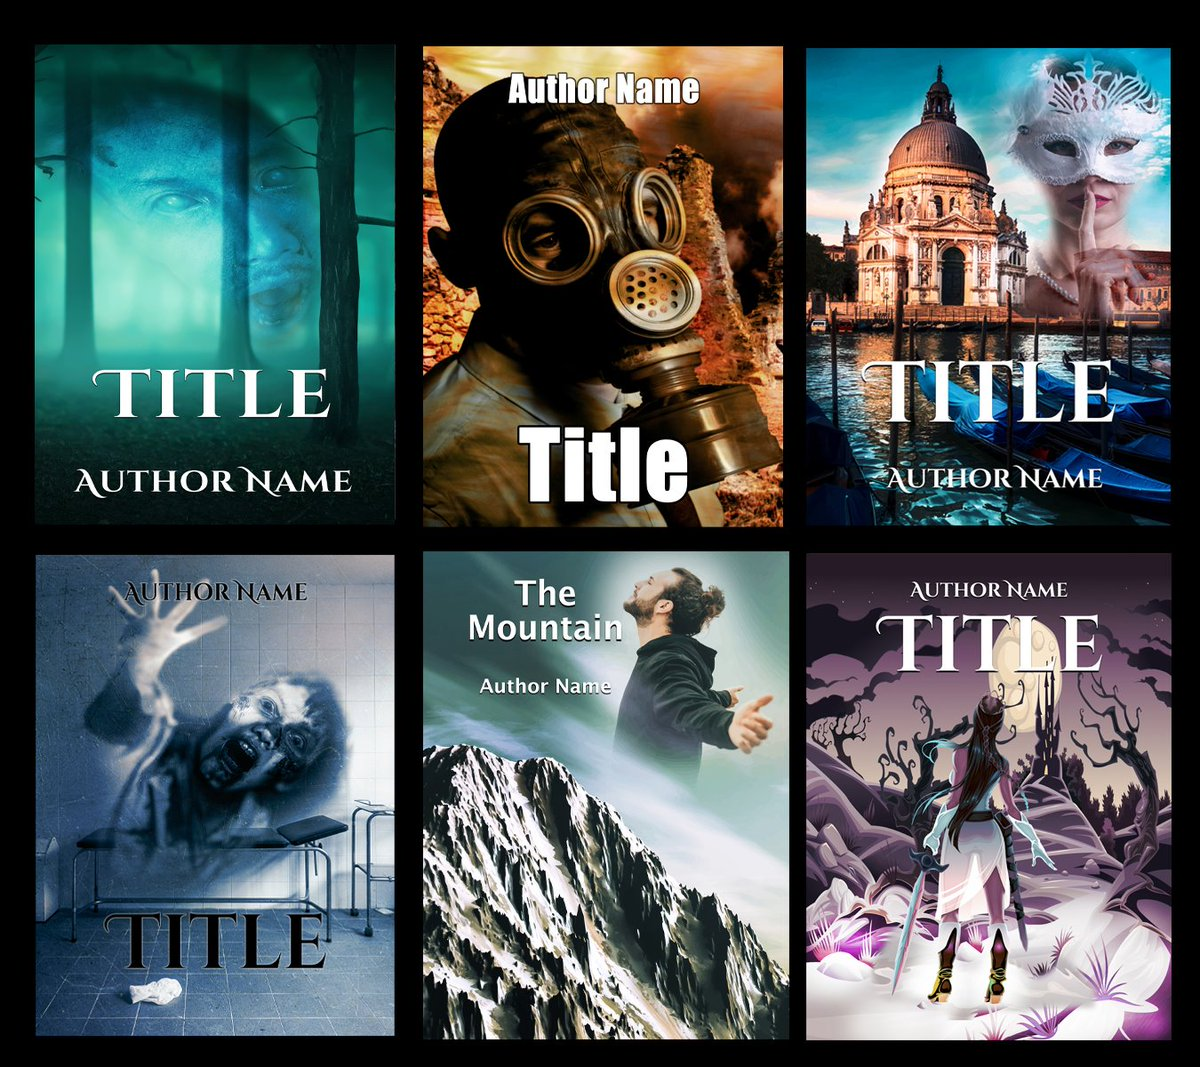 These book covers are available. Find them here:   #bookcoverdesign #selfpubbookcovers #bookcover #coverdesign #designer #book #design #bookcovers #bookcoverart #book #bookart  #selfpub #bookstagram #coverlove #selfpublishing #CoversAndInspiration